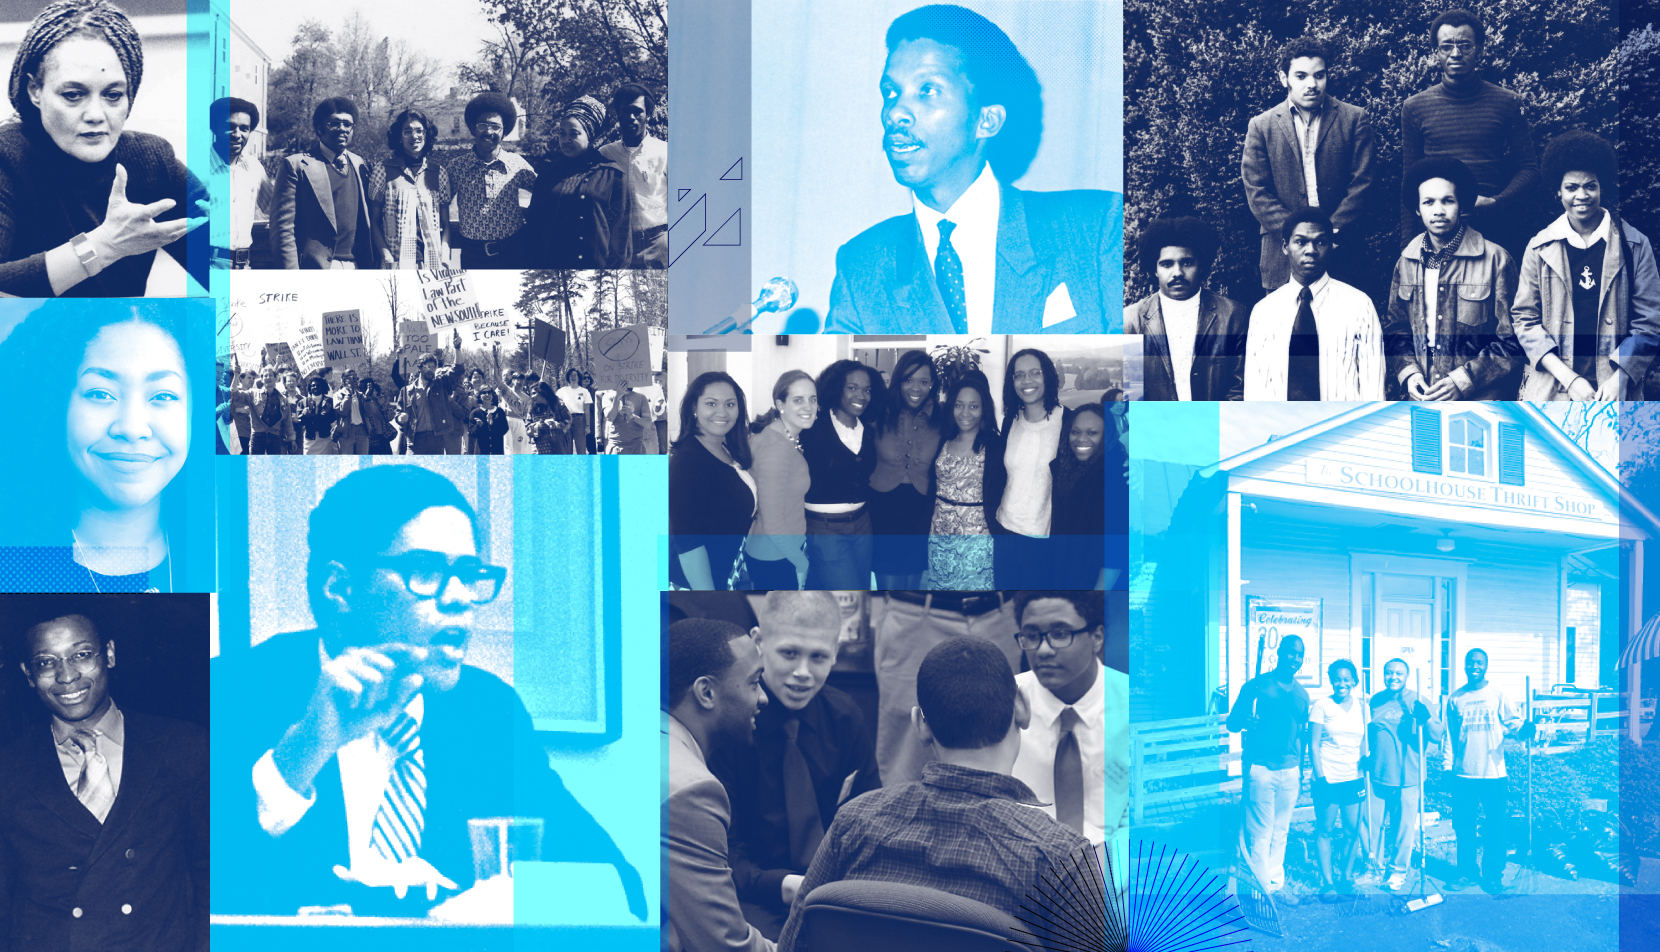 Collage of BLSA events and people